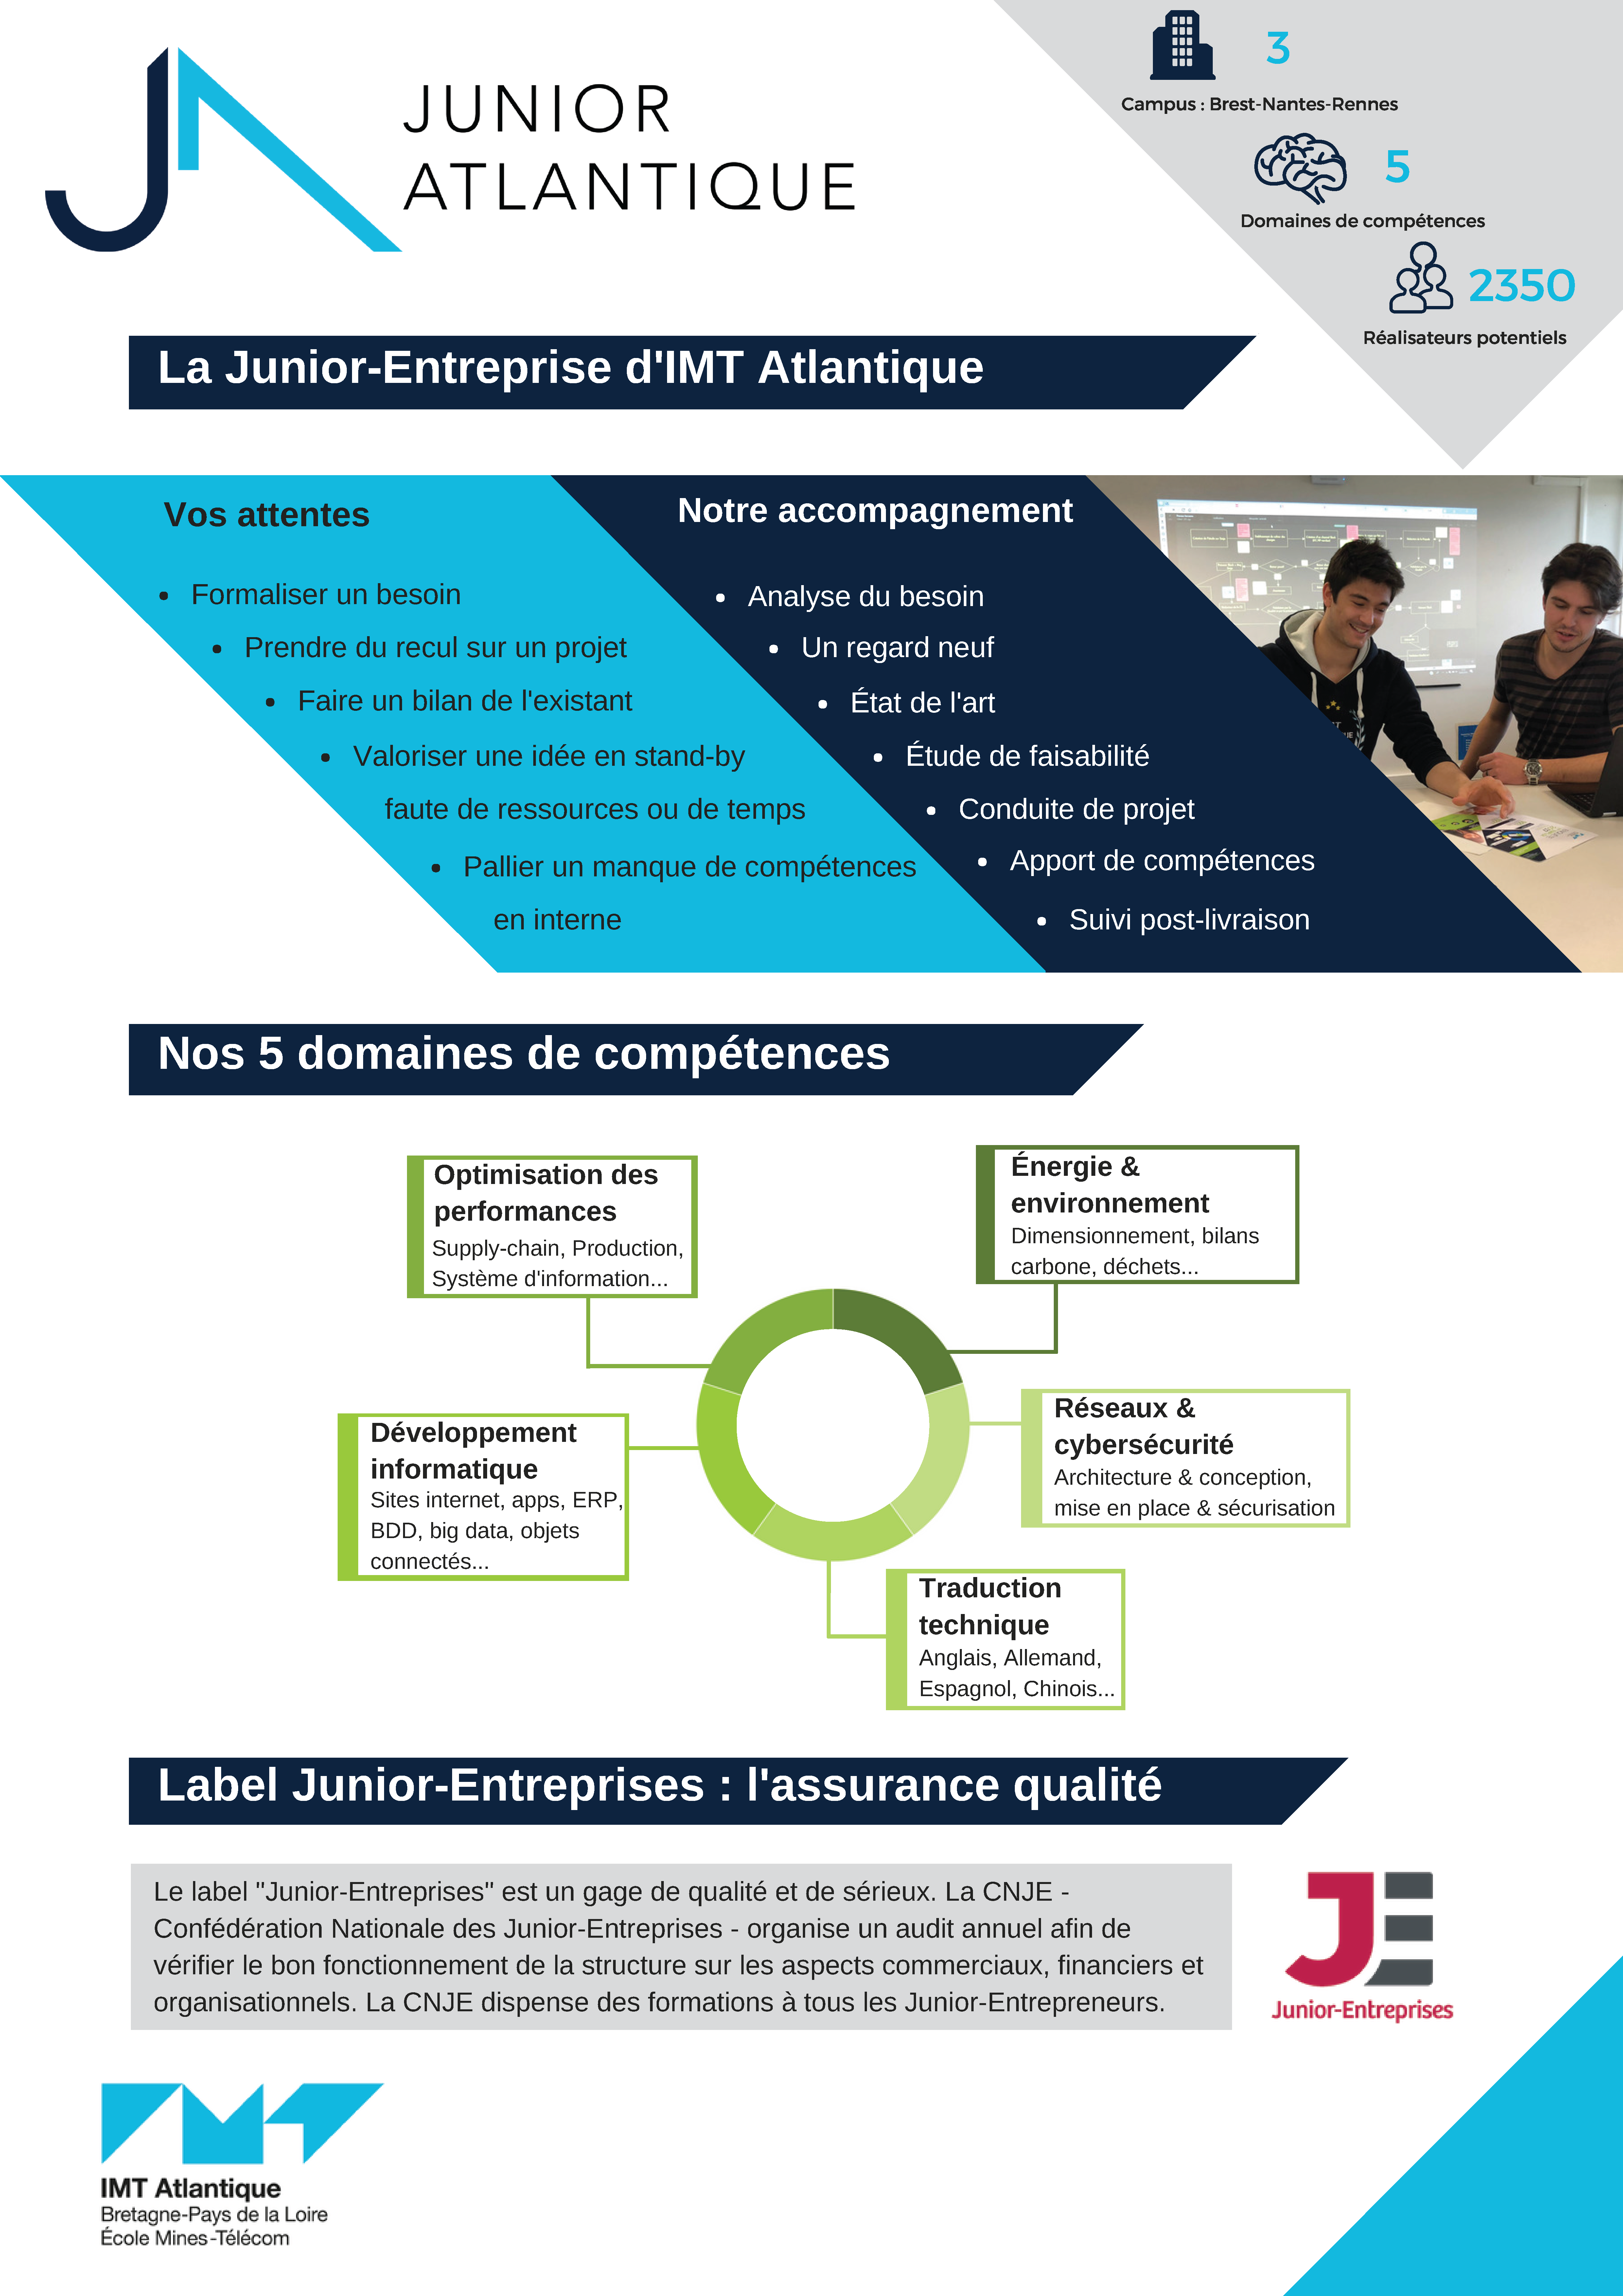 Junior Atlantique-la Junior Entreprise d'IMT Atlantique